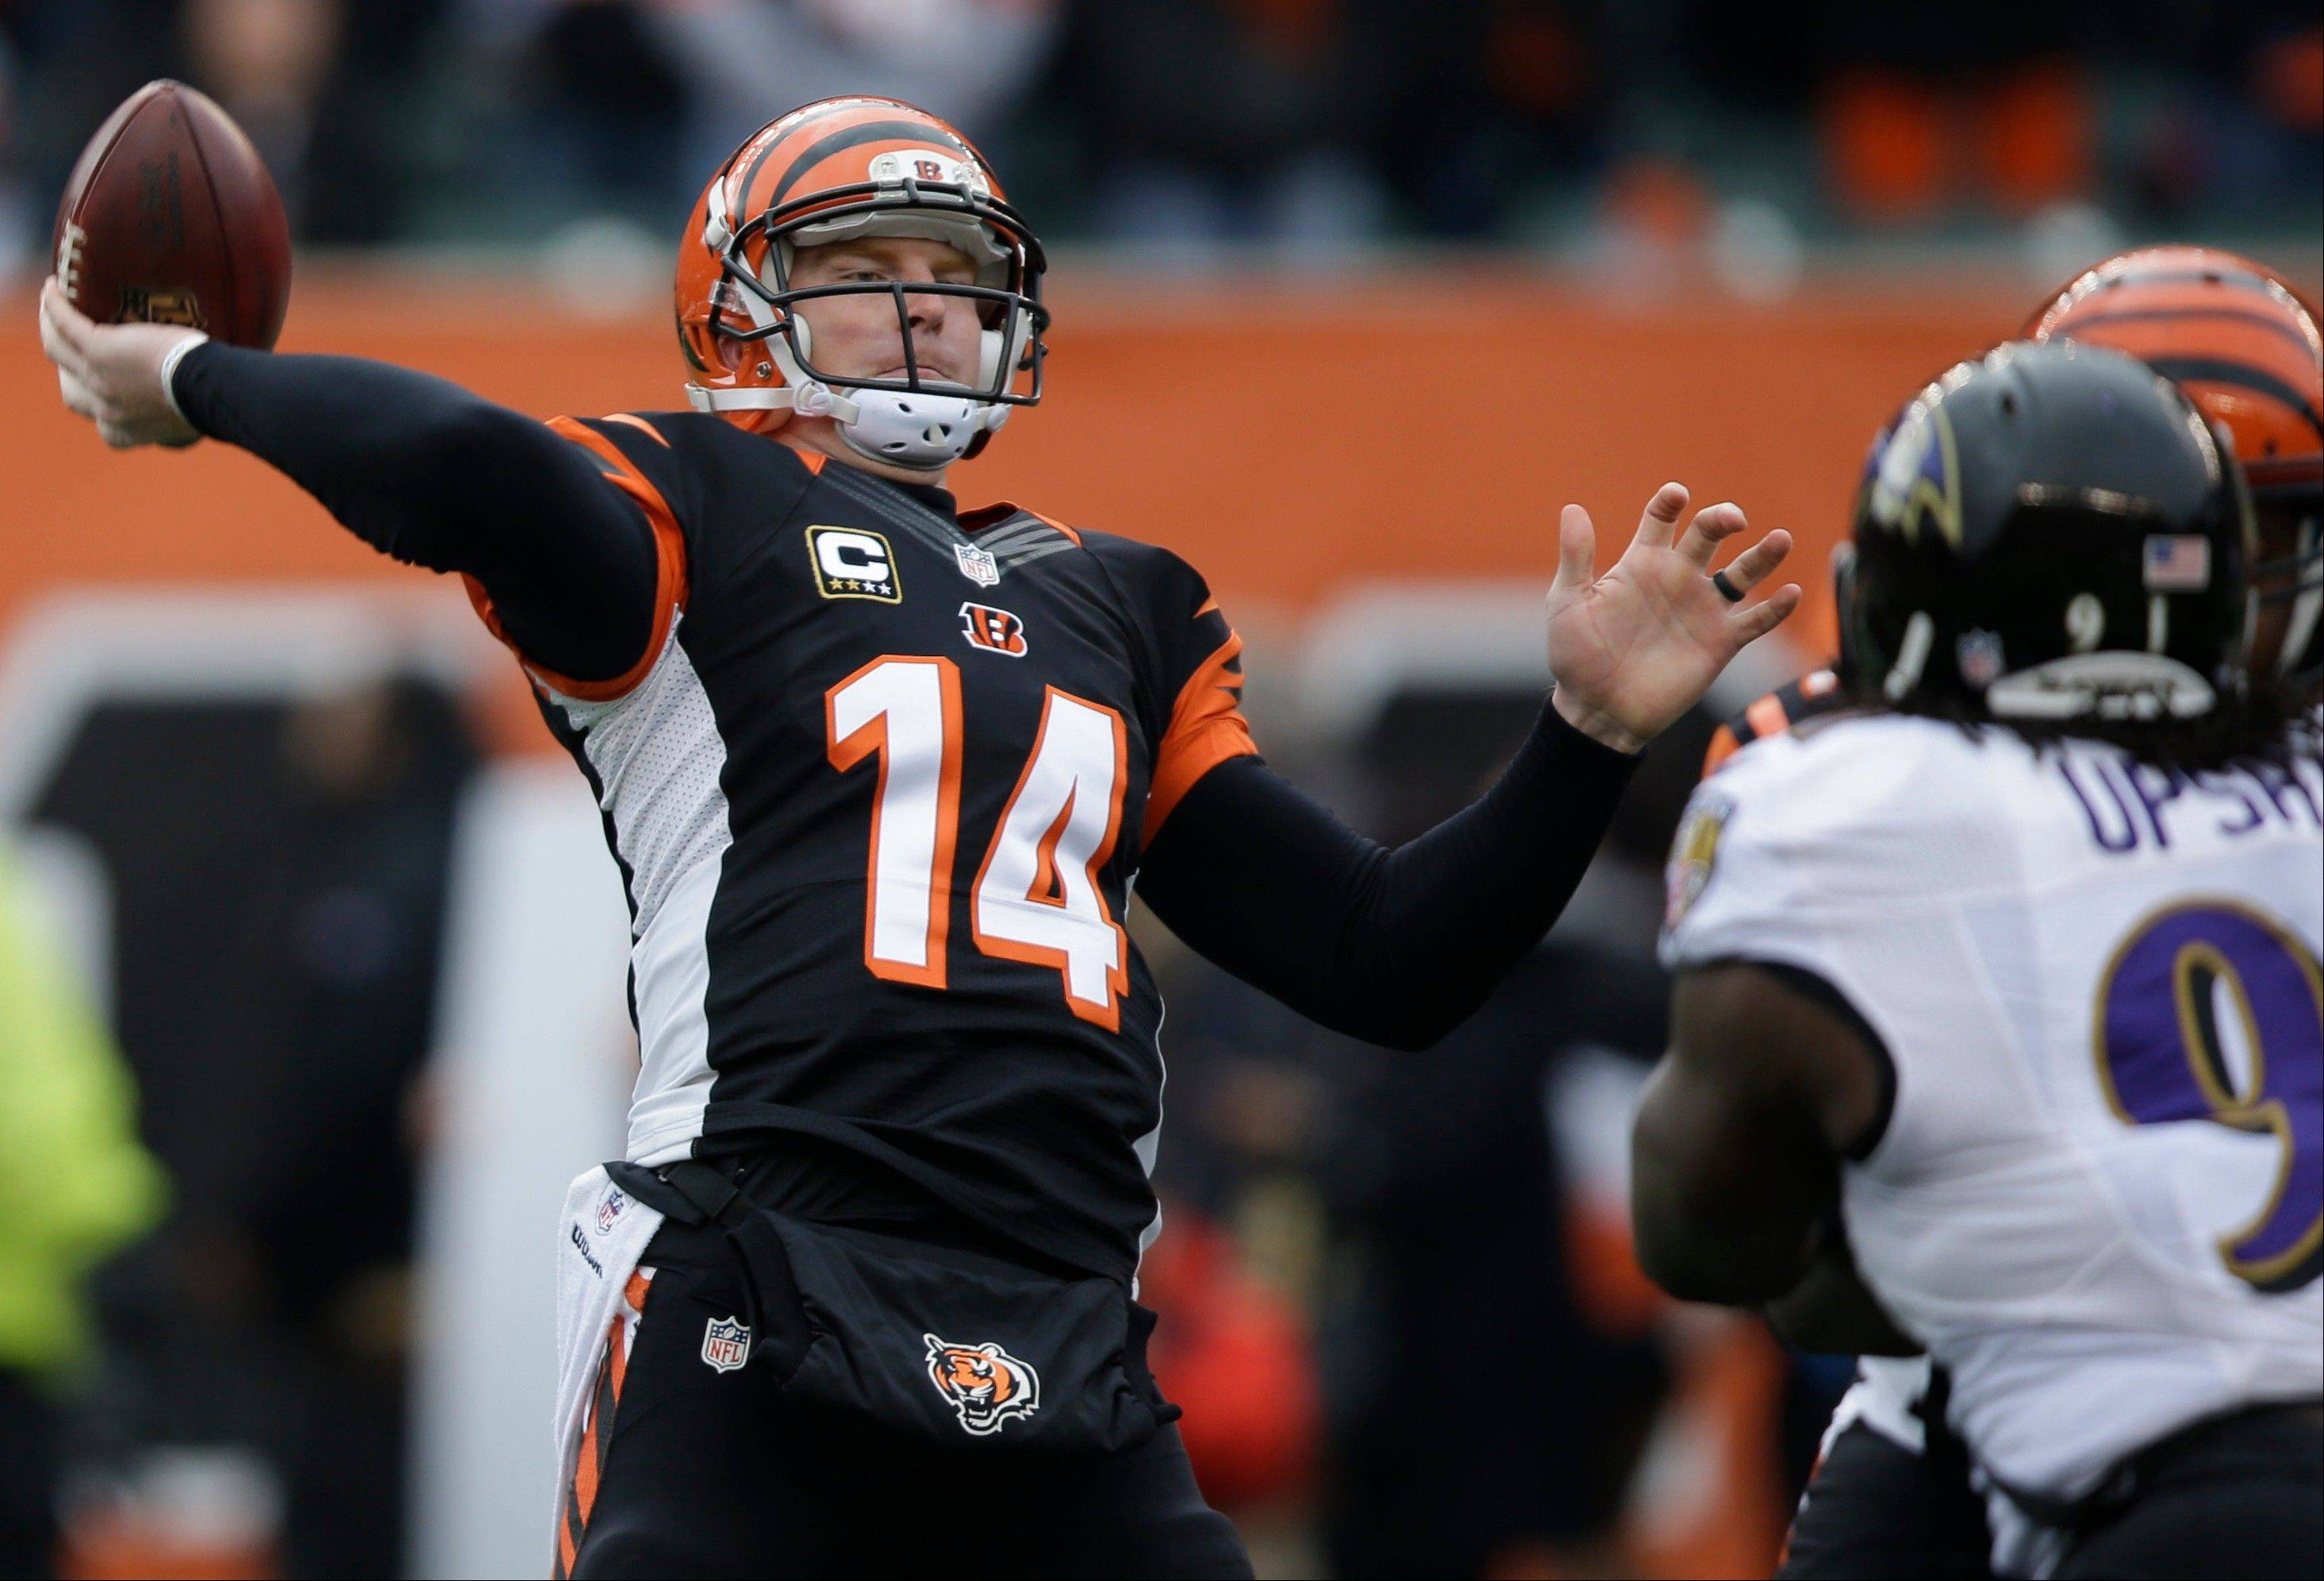 Cincinnati quarterback Andy Dalton throws a pass against the Baltimore Ravens in the first half of last week�s game. The Bengals finished in the top 10 in offense and defense this season for the first time since 1989.